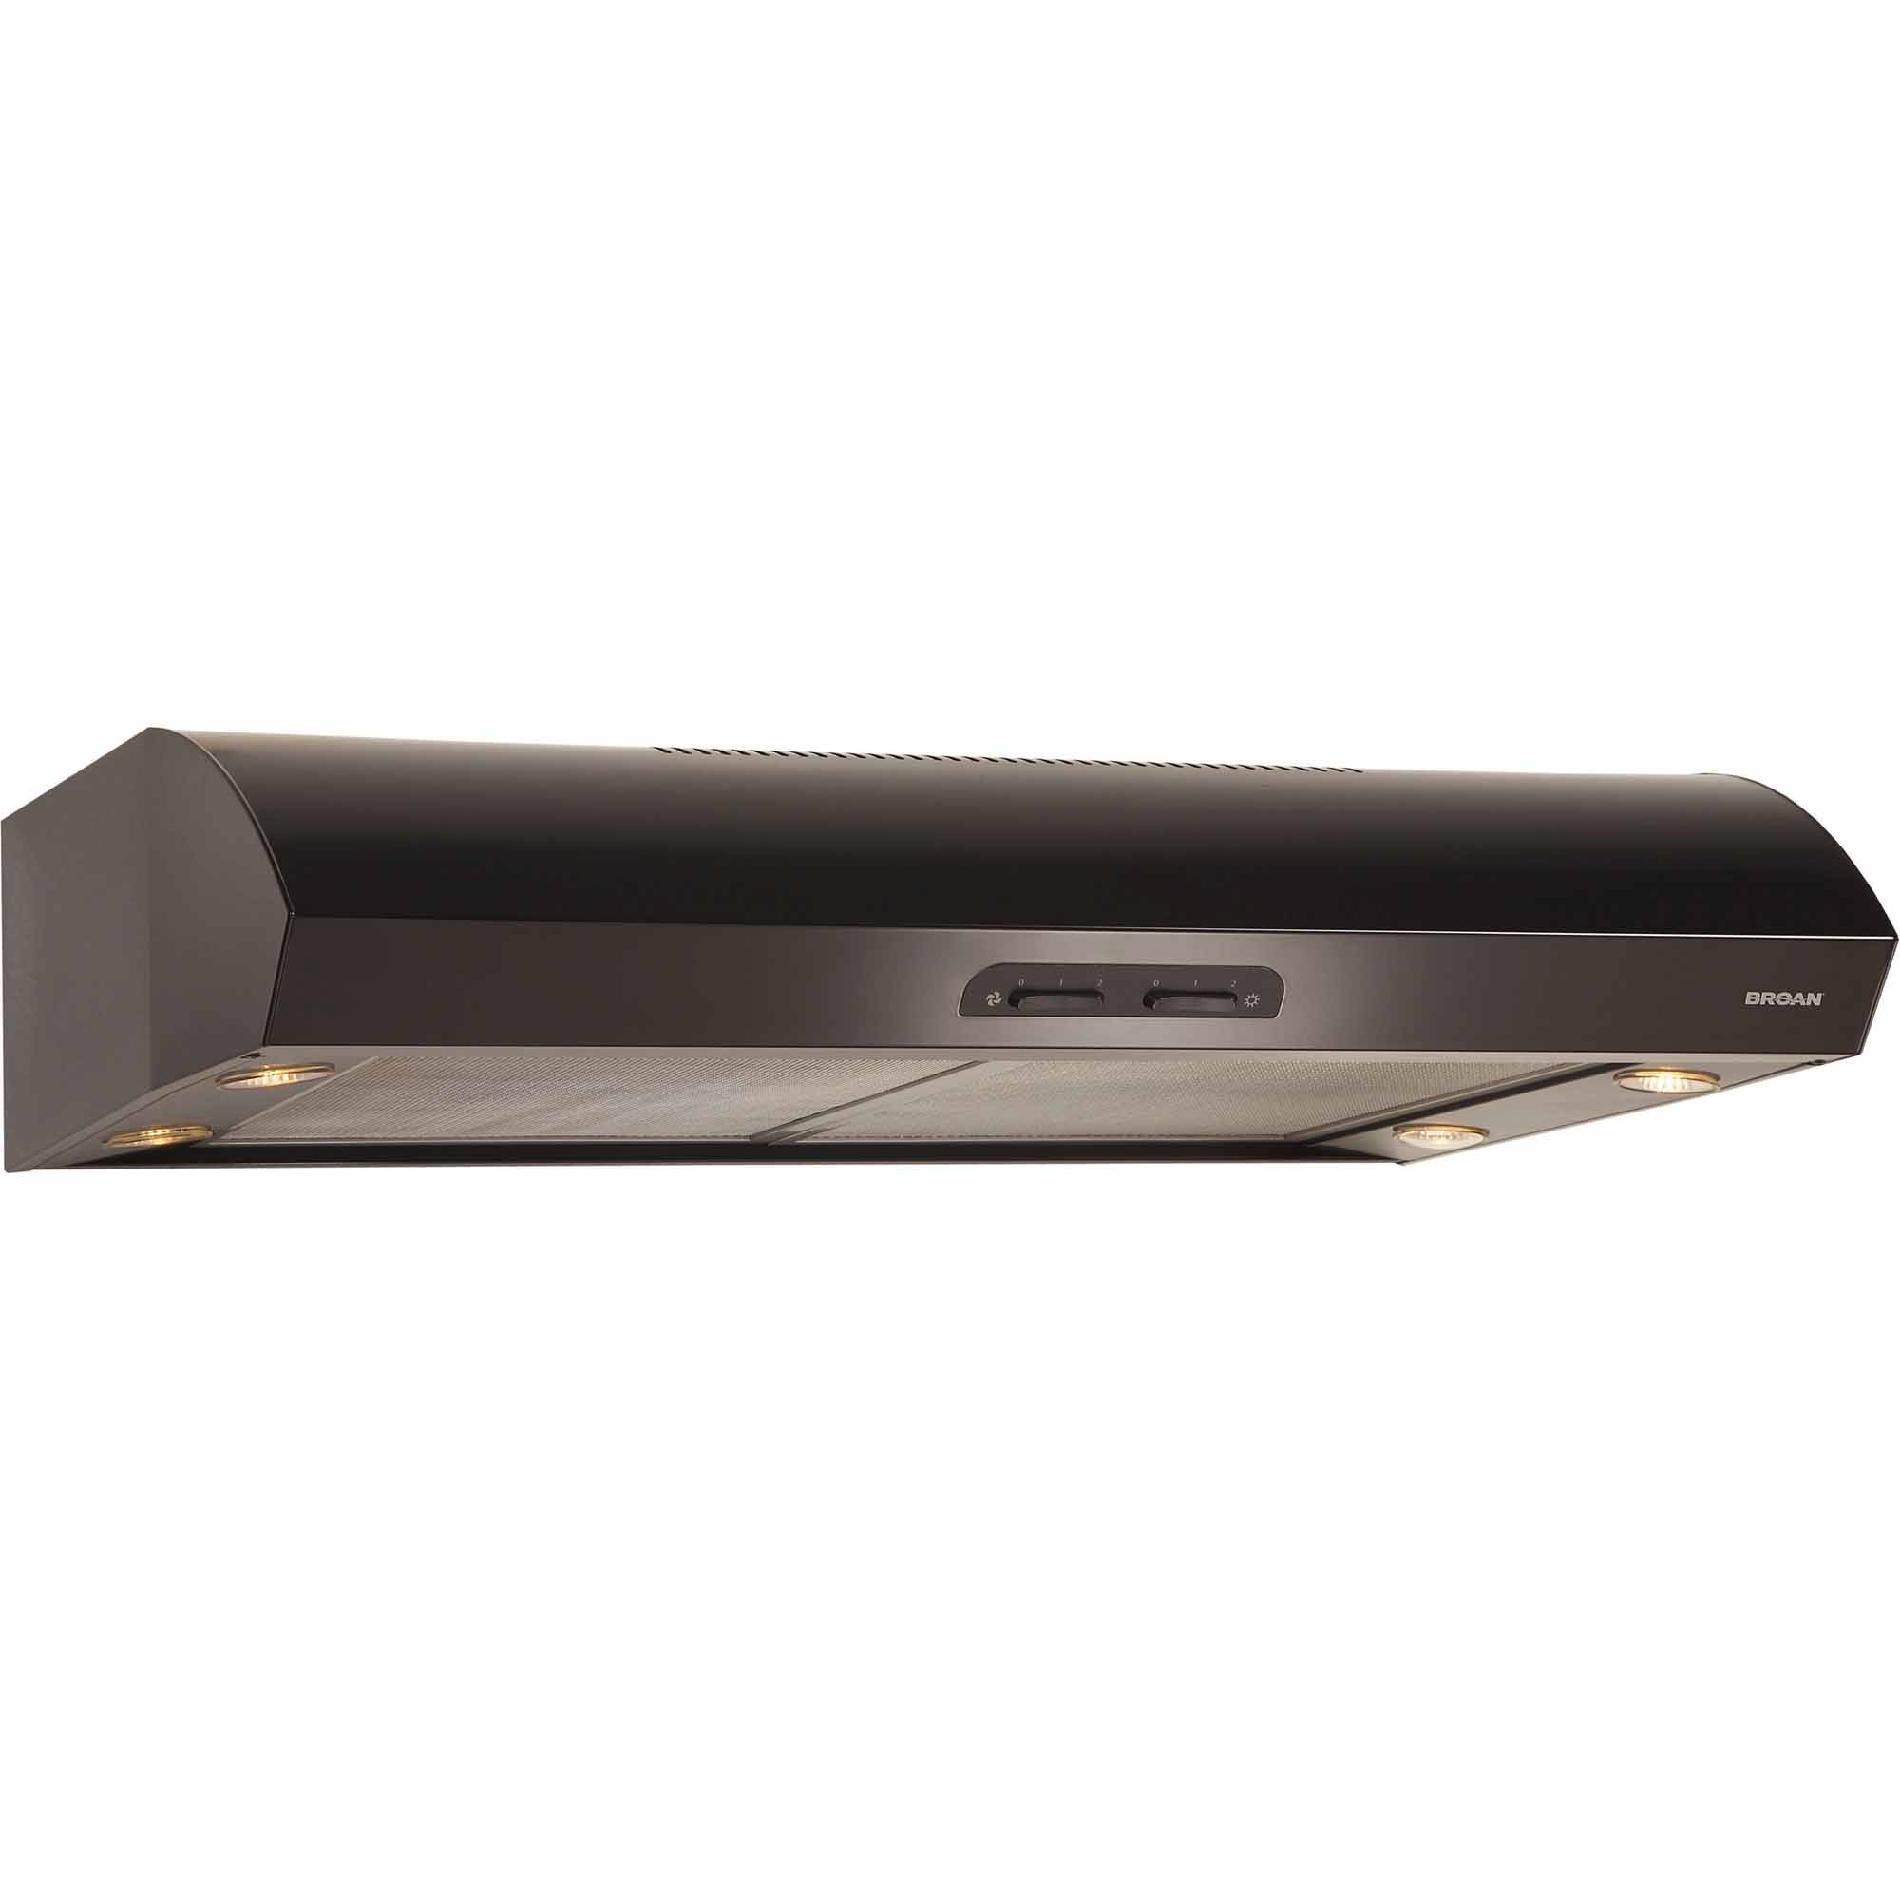 "Broan QP130BL 30"" 300 CFM Under Cabinet Range Hood - Black"